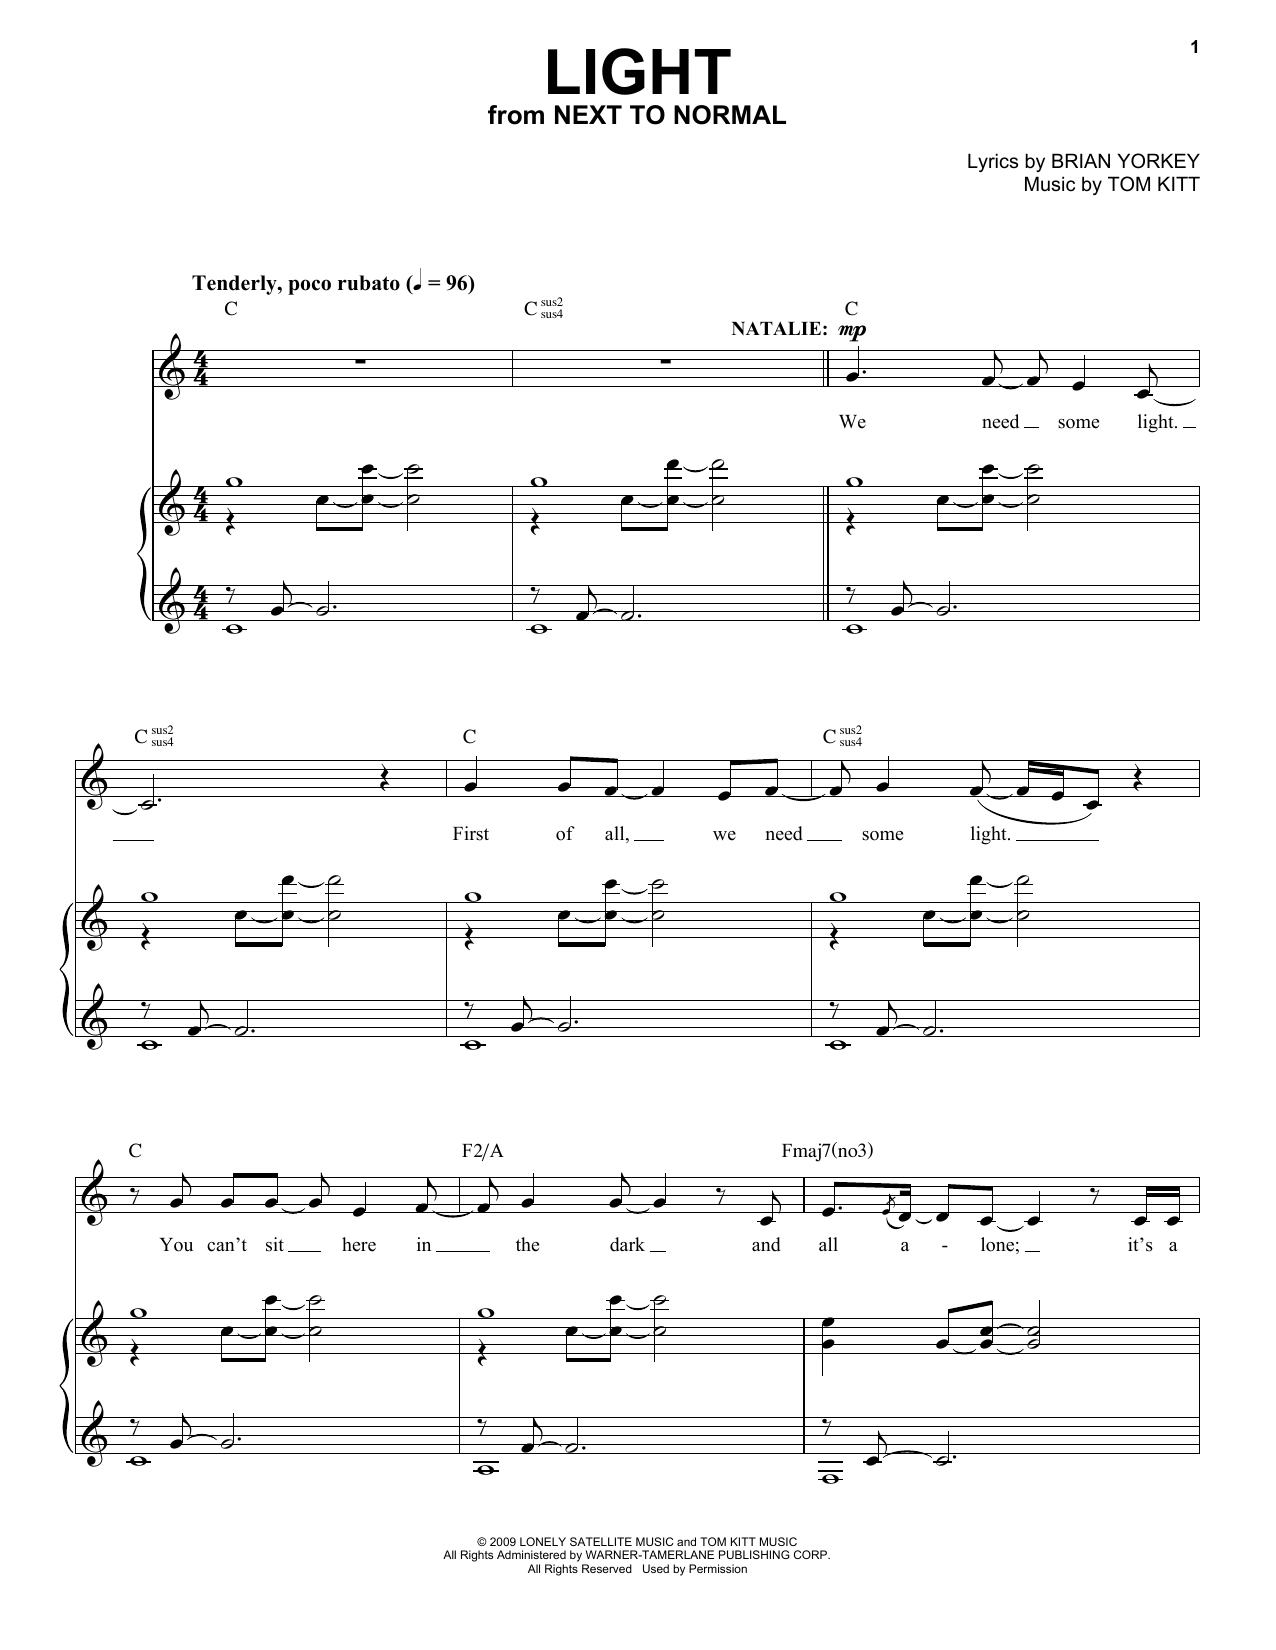 Next to Normal Cast Light (from Next to Normal) sheet music notes and chords